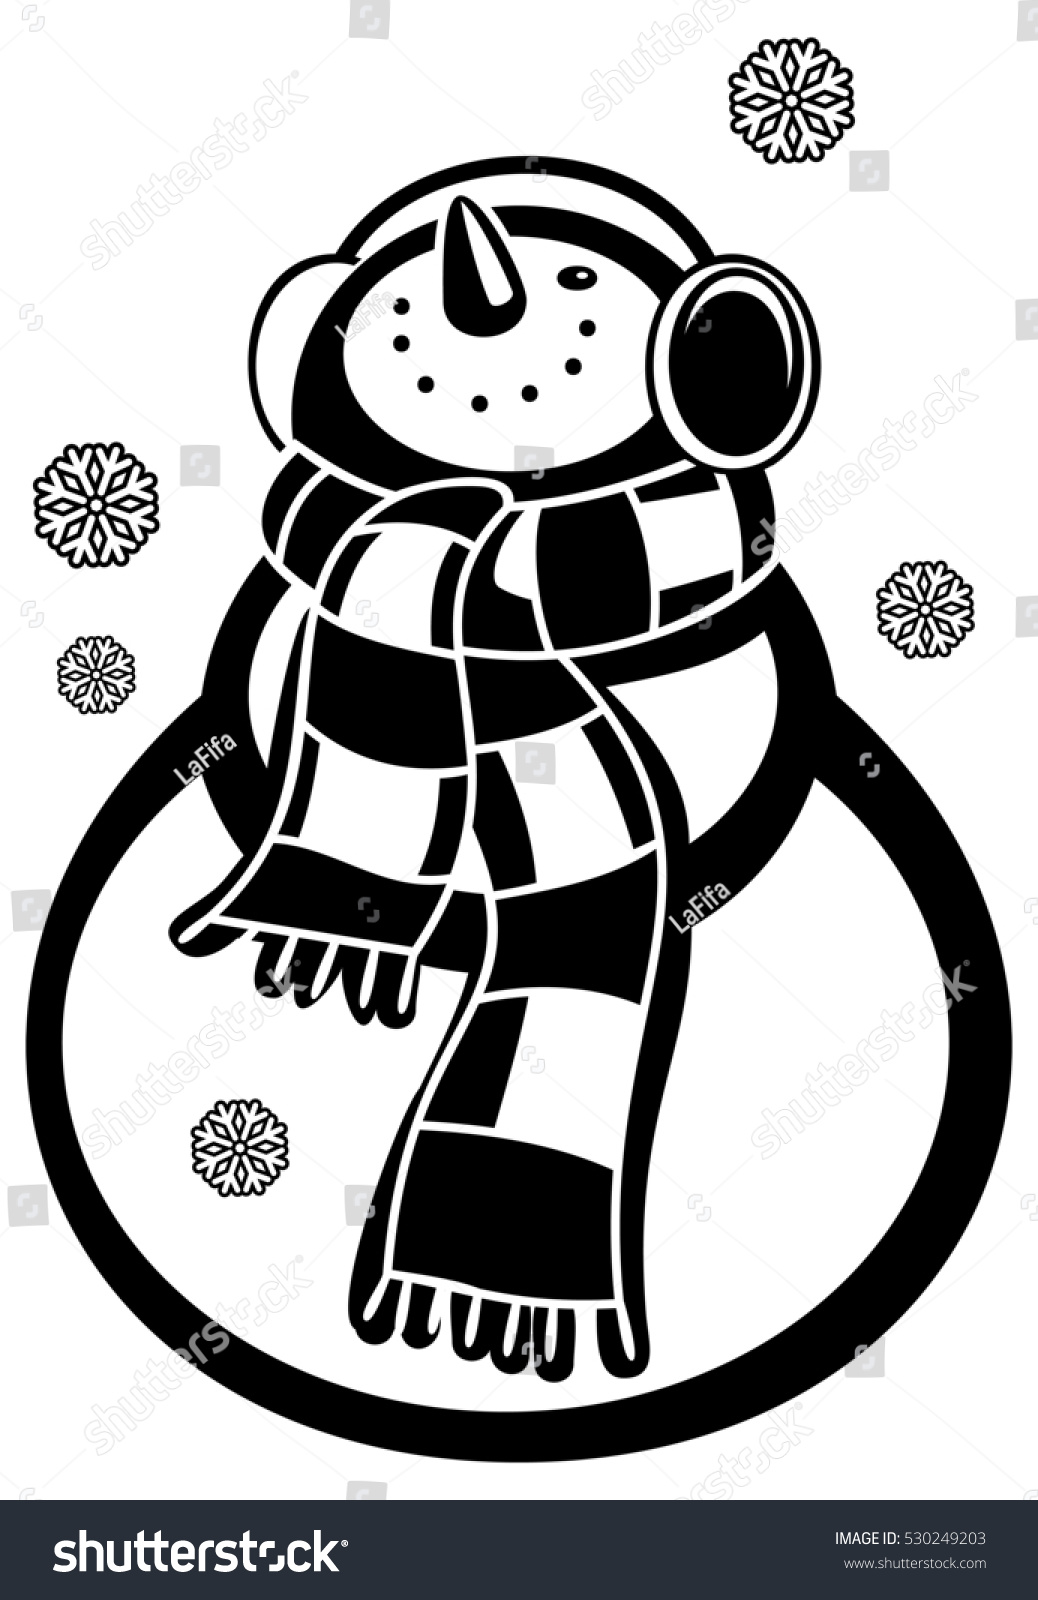 Snowman And Snowflakes Coloring Pages